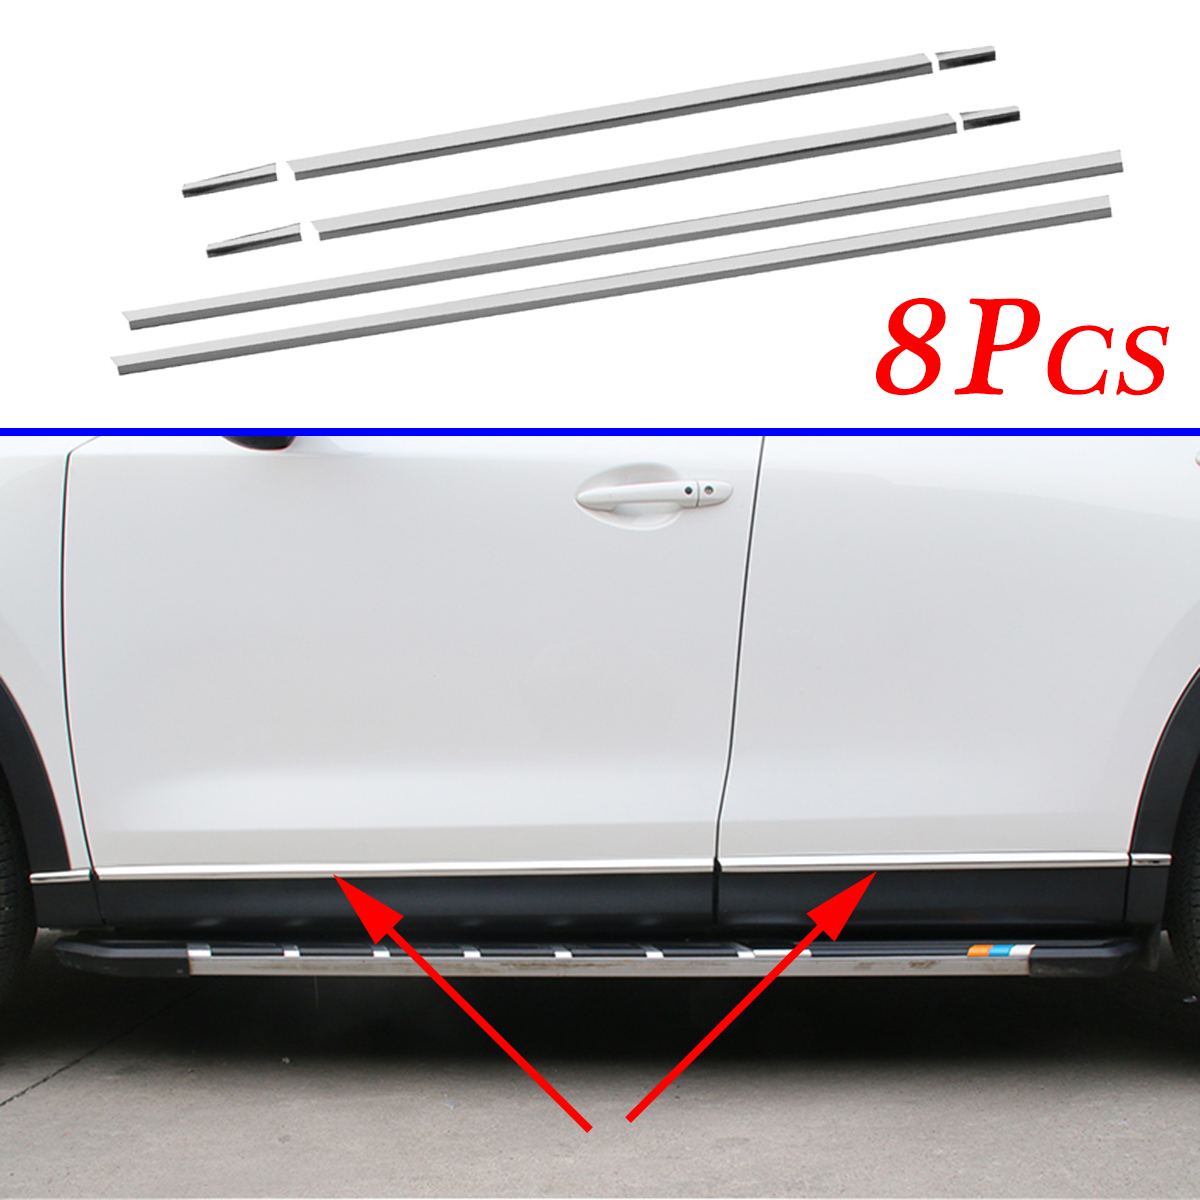 Stainless Steel Door Side Body Sill Stripes Cover Trim Fit For Mazda CX-5 KF 2017 2018 2019 Accessories Exterior Molding Parts